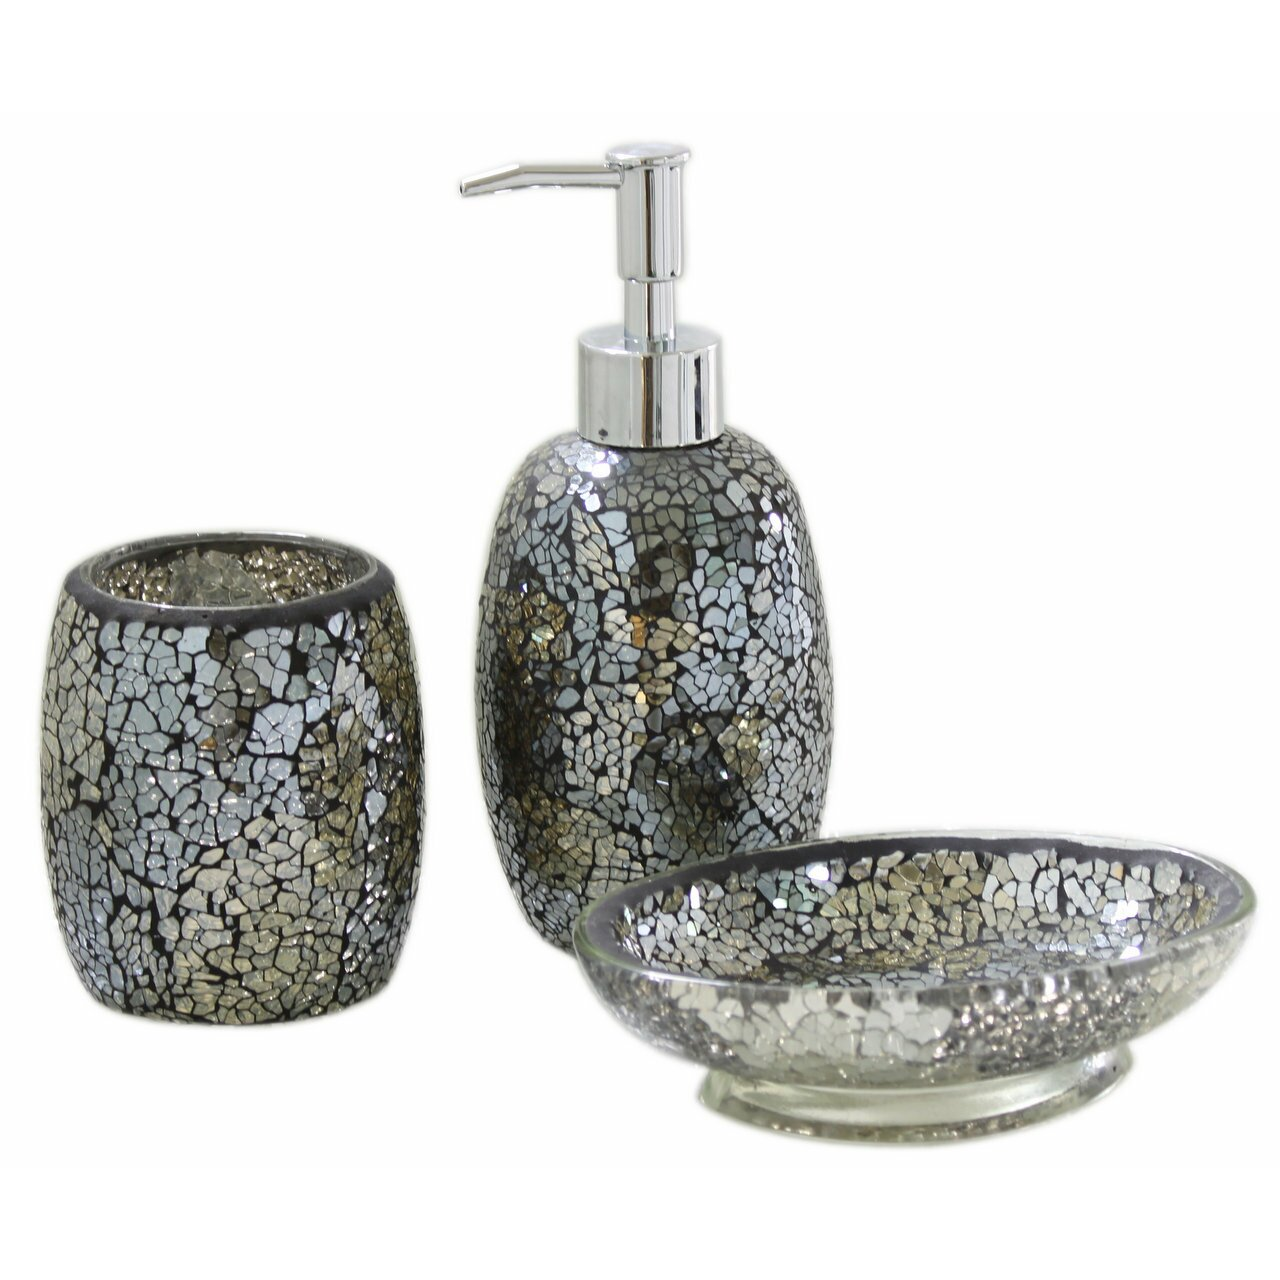 House additions mosaic bathroom accessory set reviews for Silver mosaic bathroom accessories